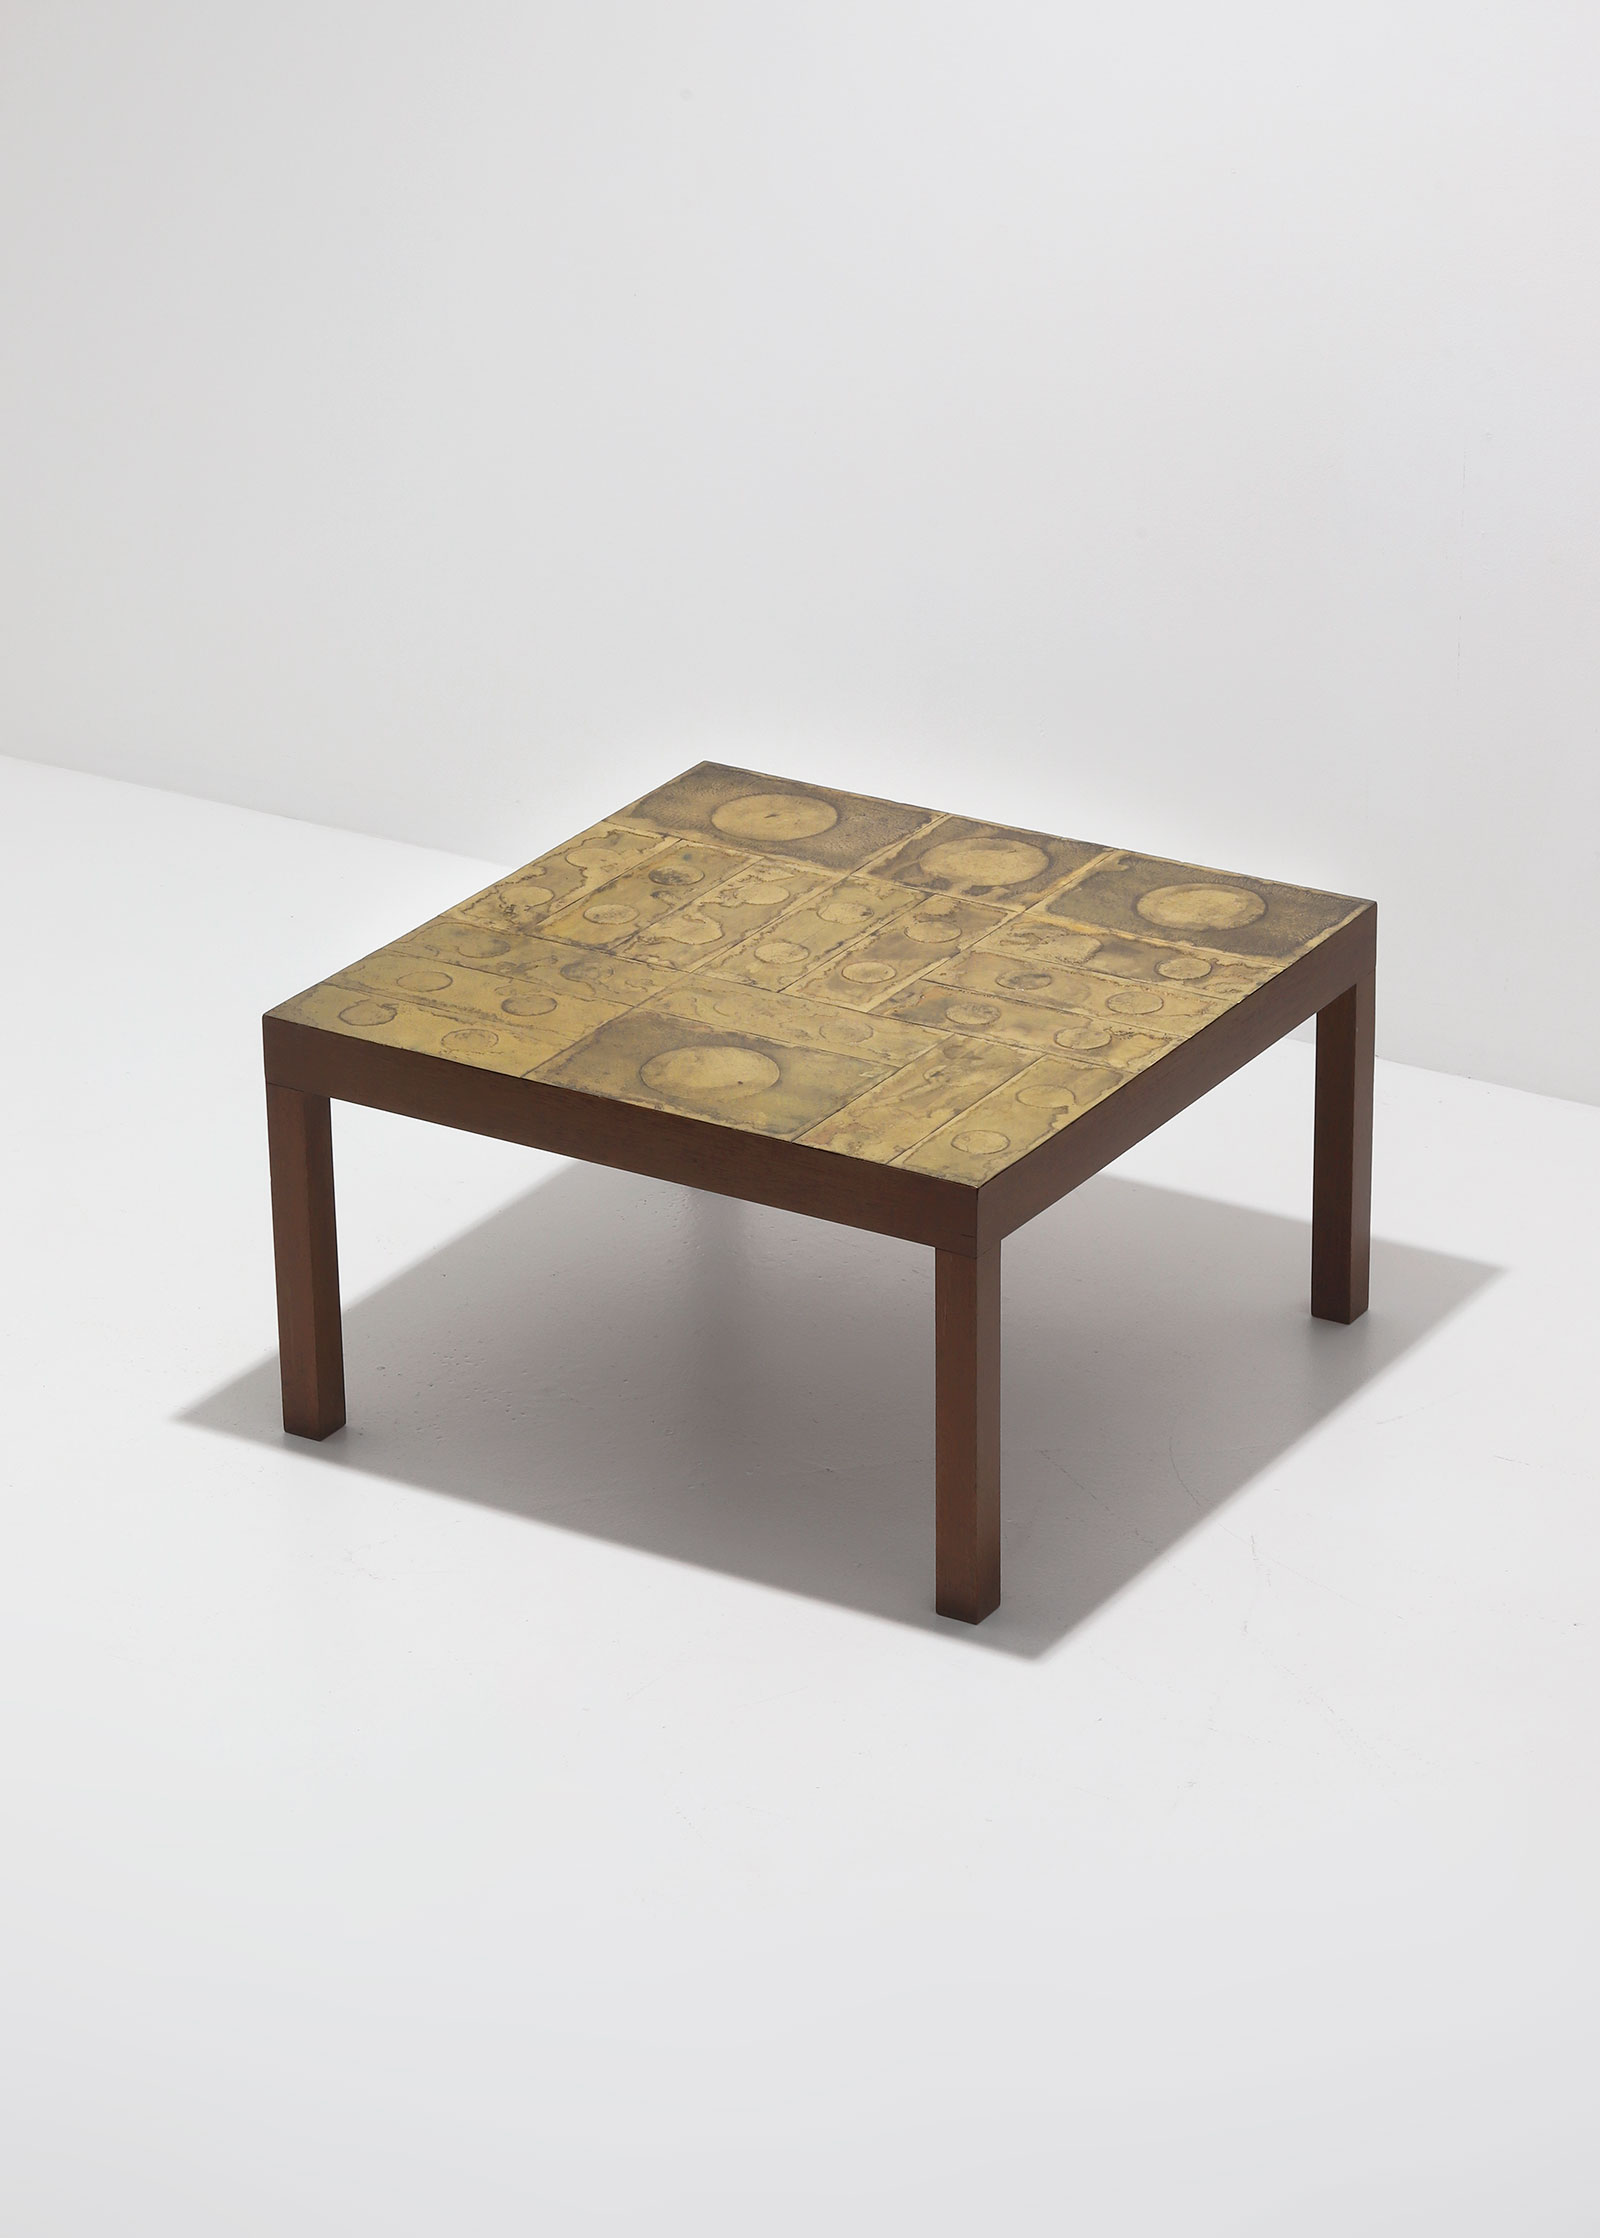 Willy Daro Brass etched Coffee Table 1970simage 2